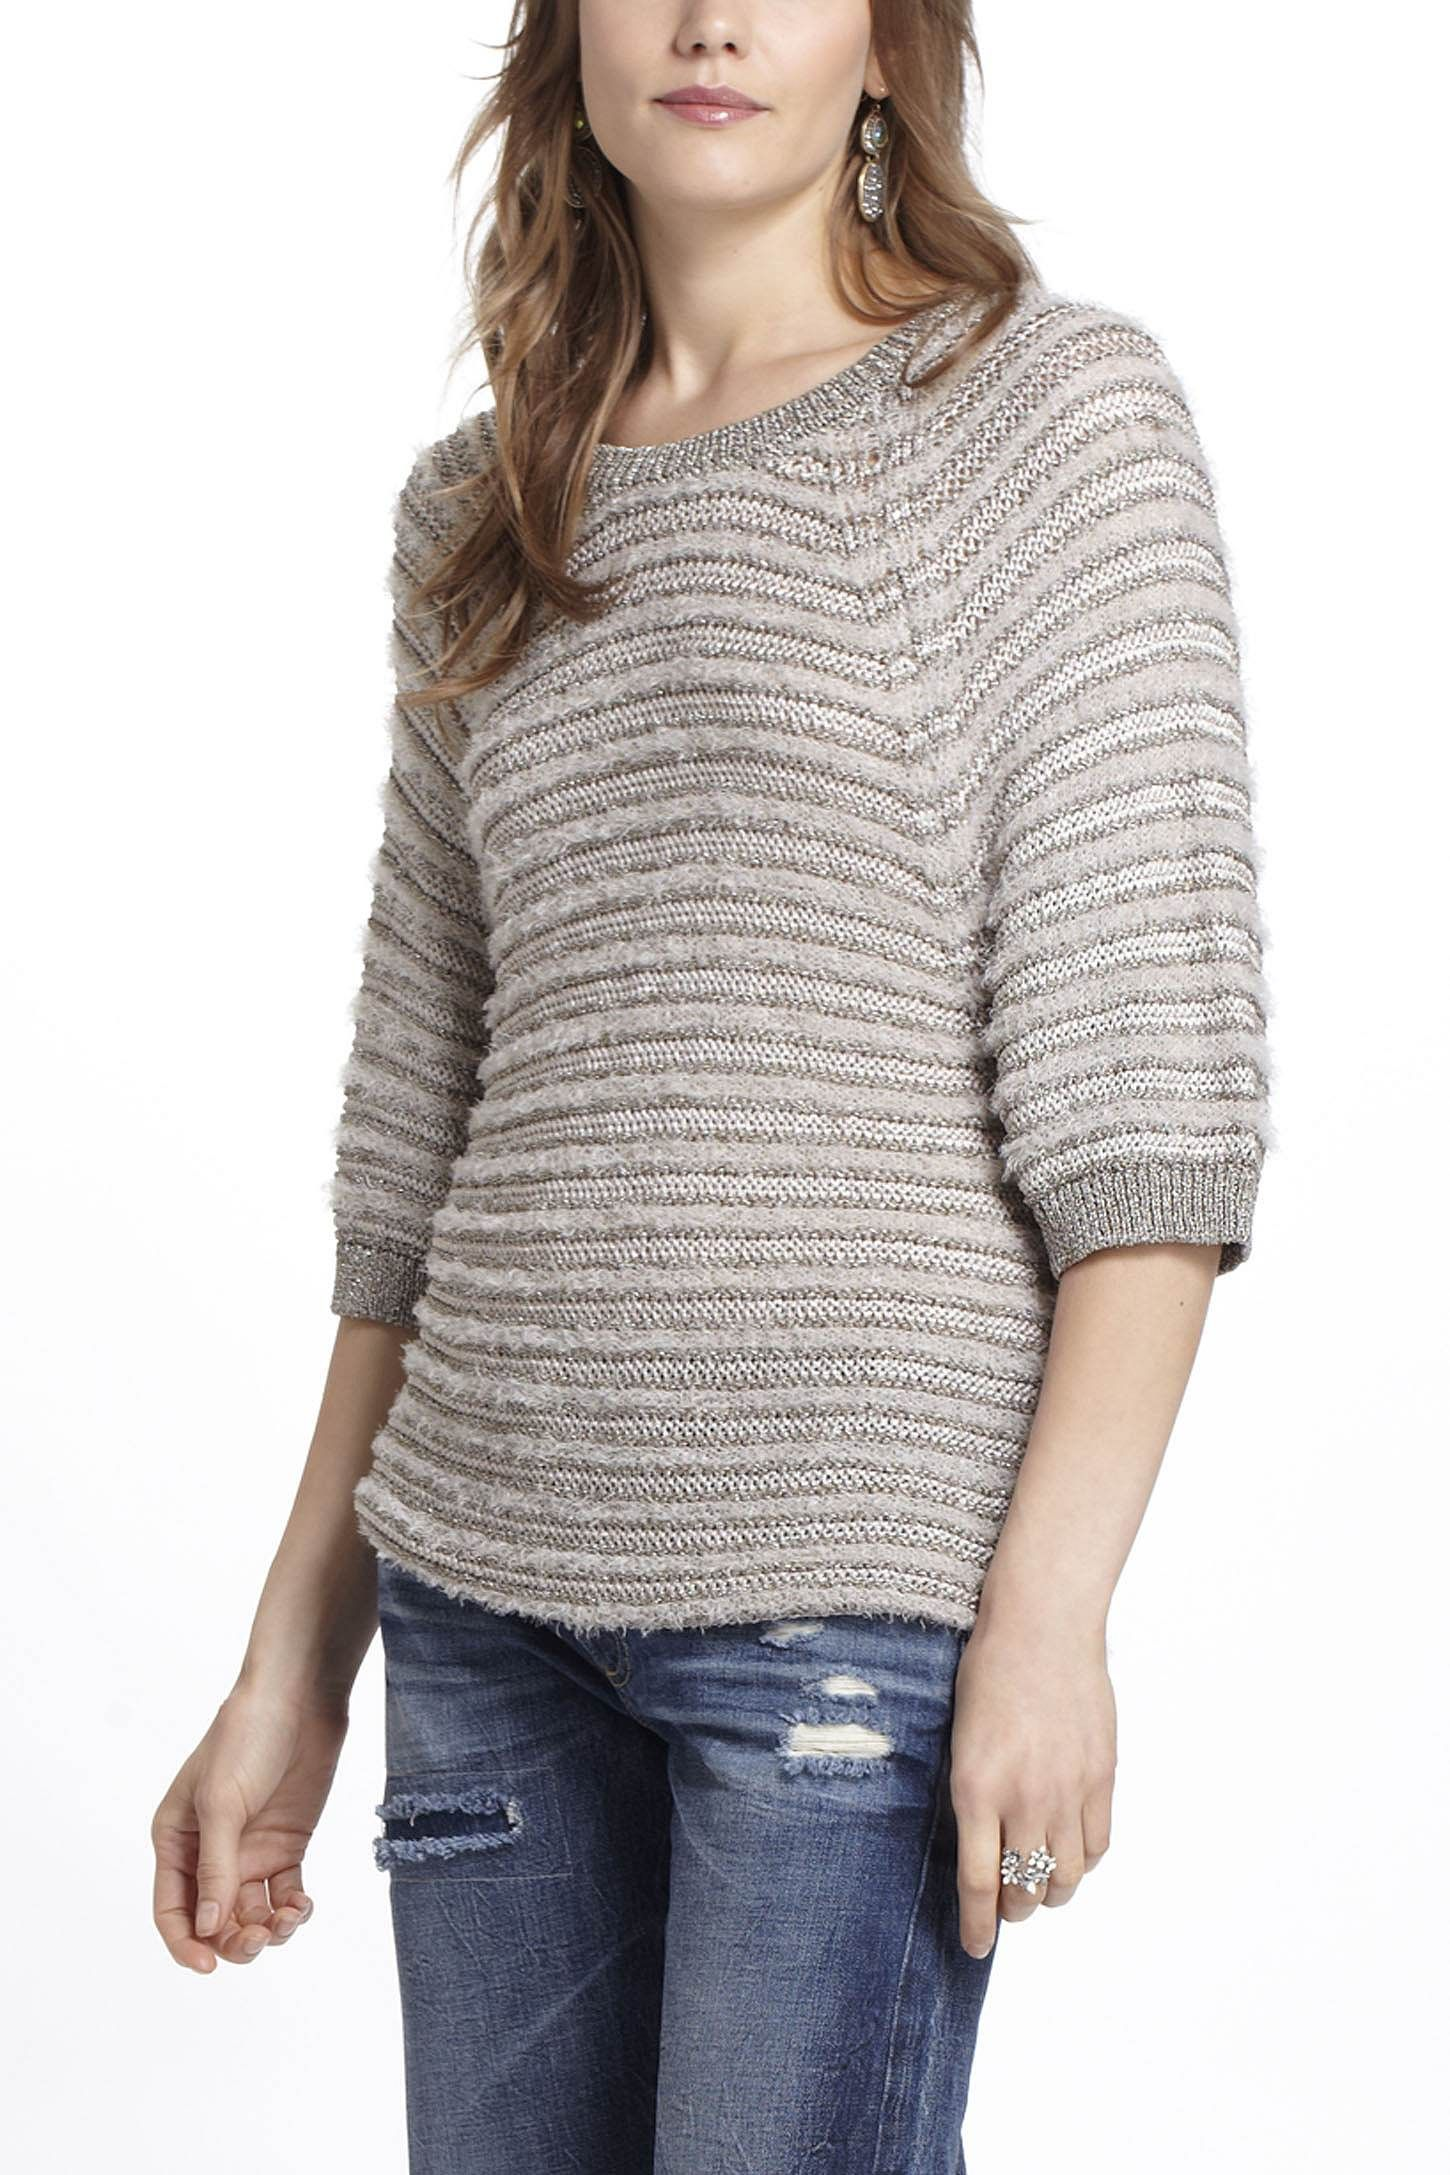 anthropologie fall 2012 knitted pinterest clothes